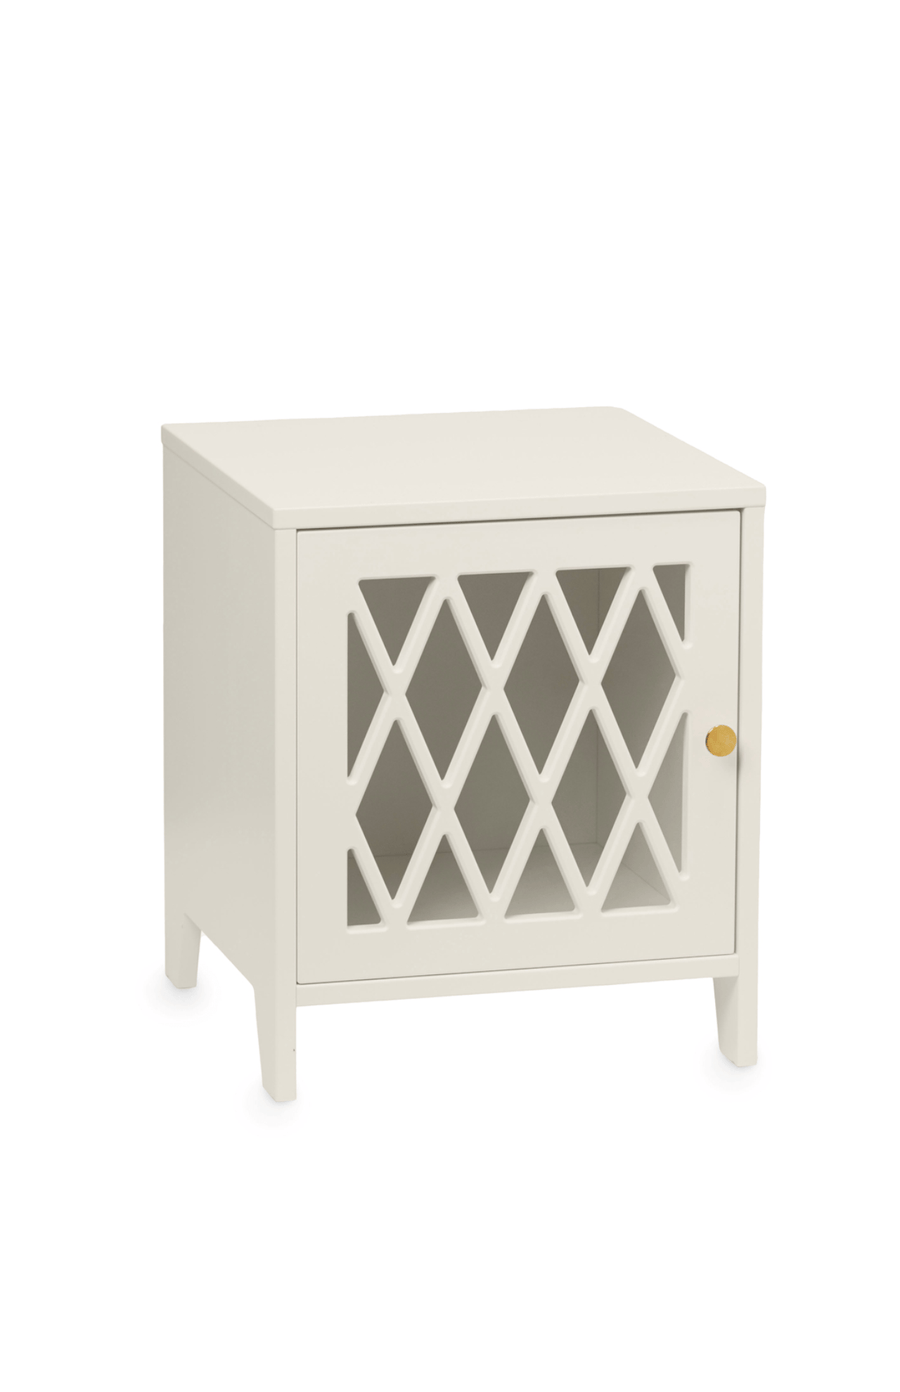 Cam Cam Copenhagen Harlequin Bedside Table - Light Sand